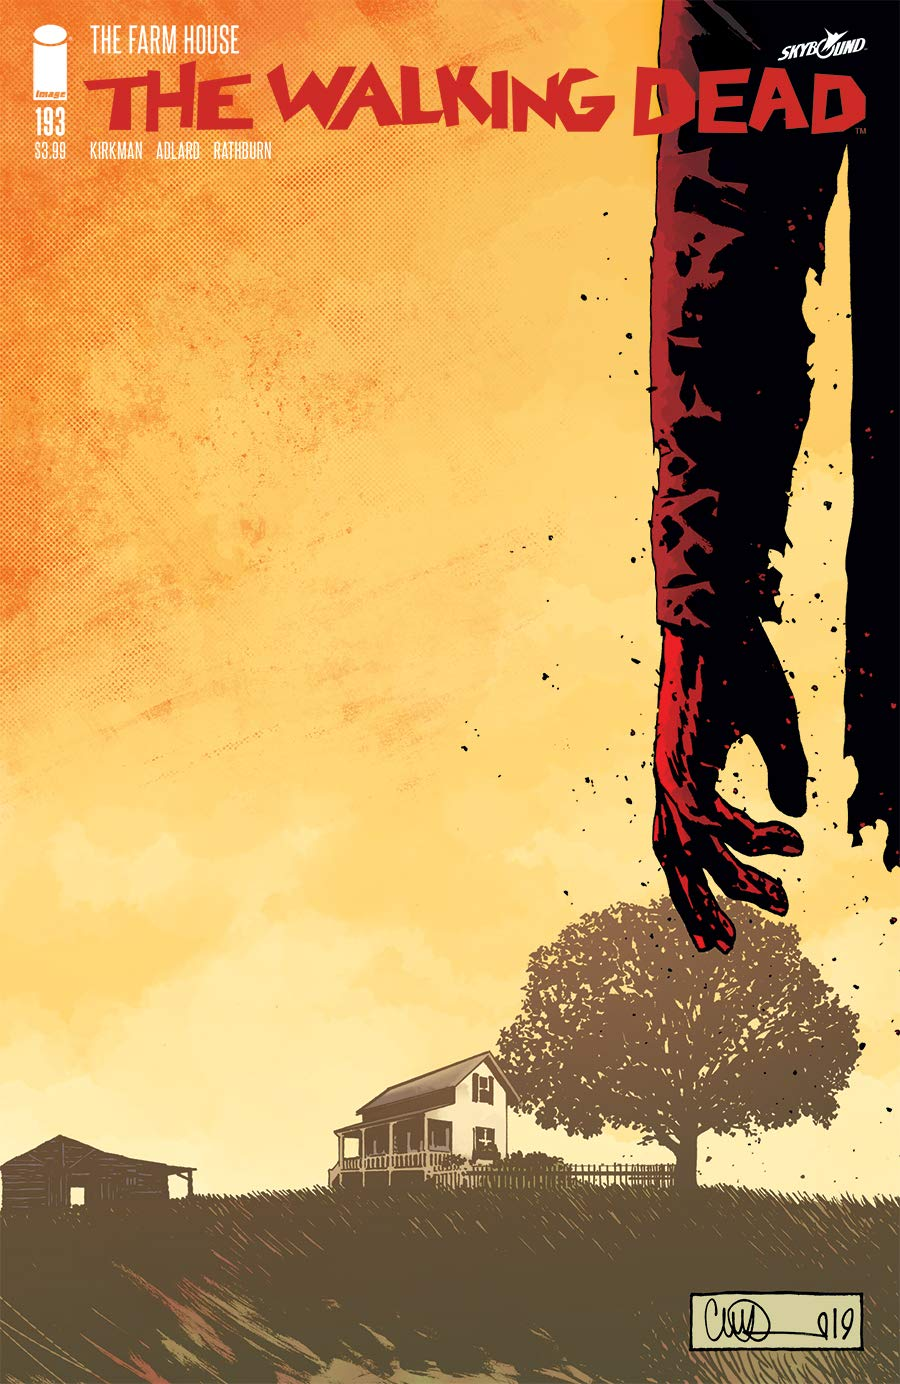 The 100 Best Comics of the Decade: The Walking Dead #193